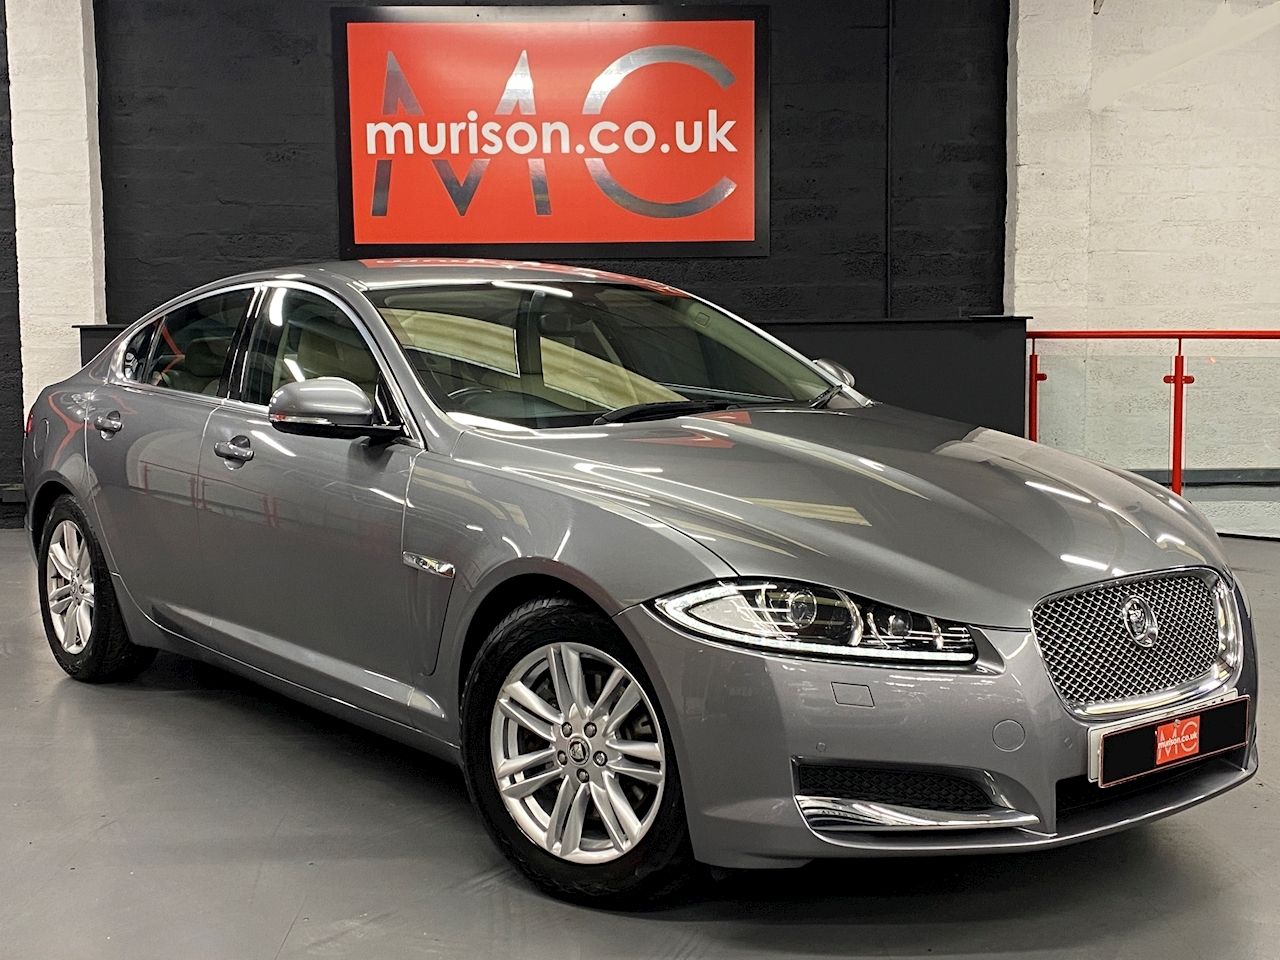 Xf Luxury 2.2d (200) Auto 2.2 4dr Saloon Automatic Diesel